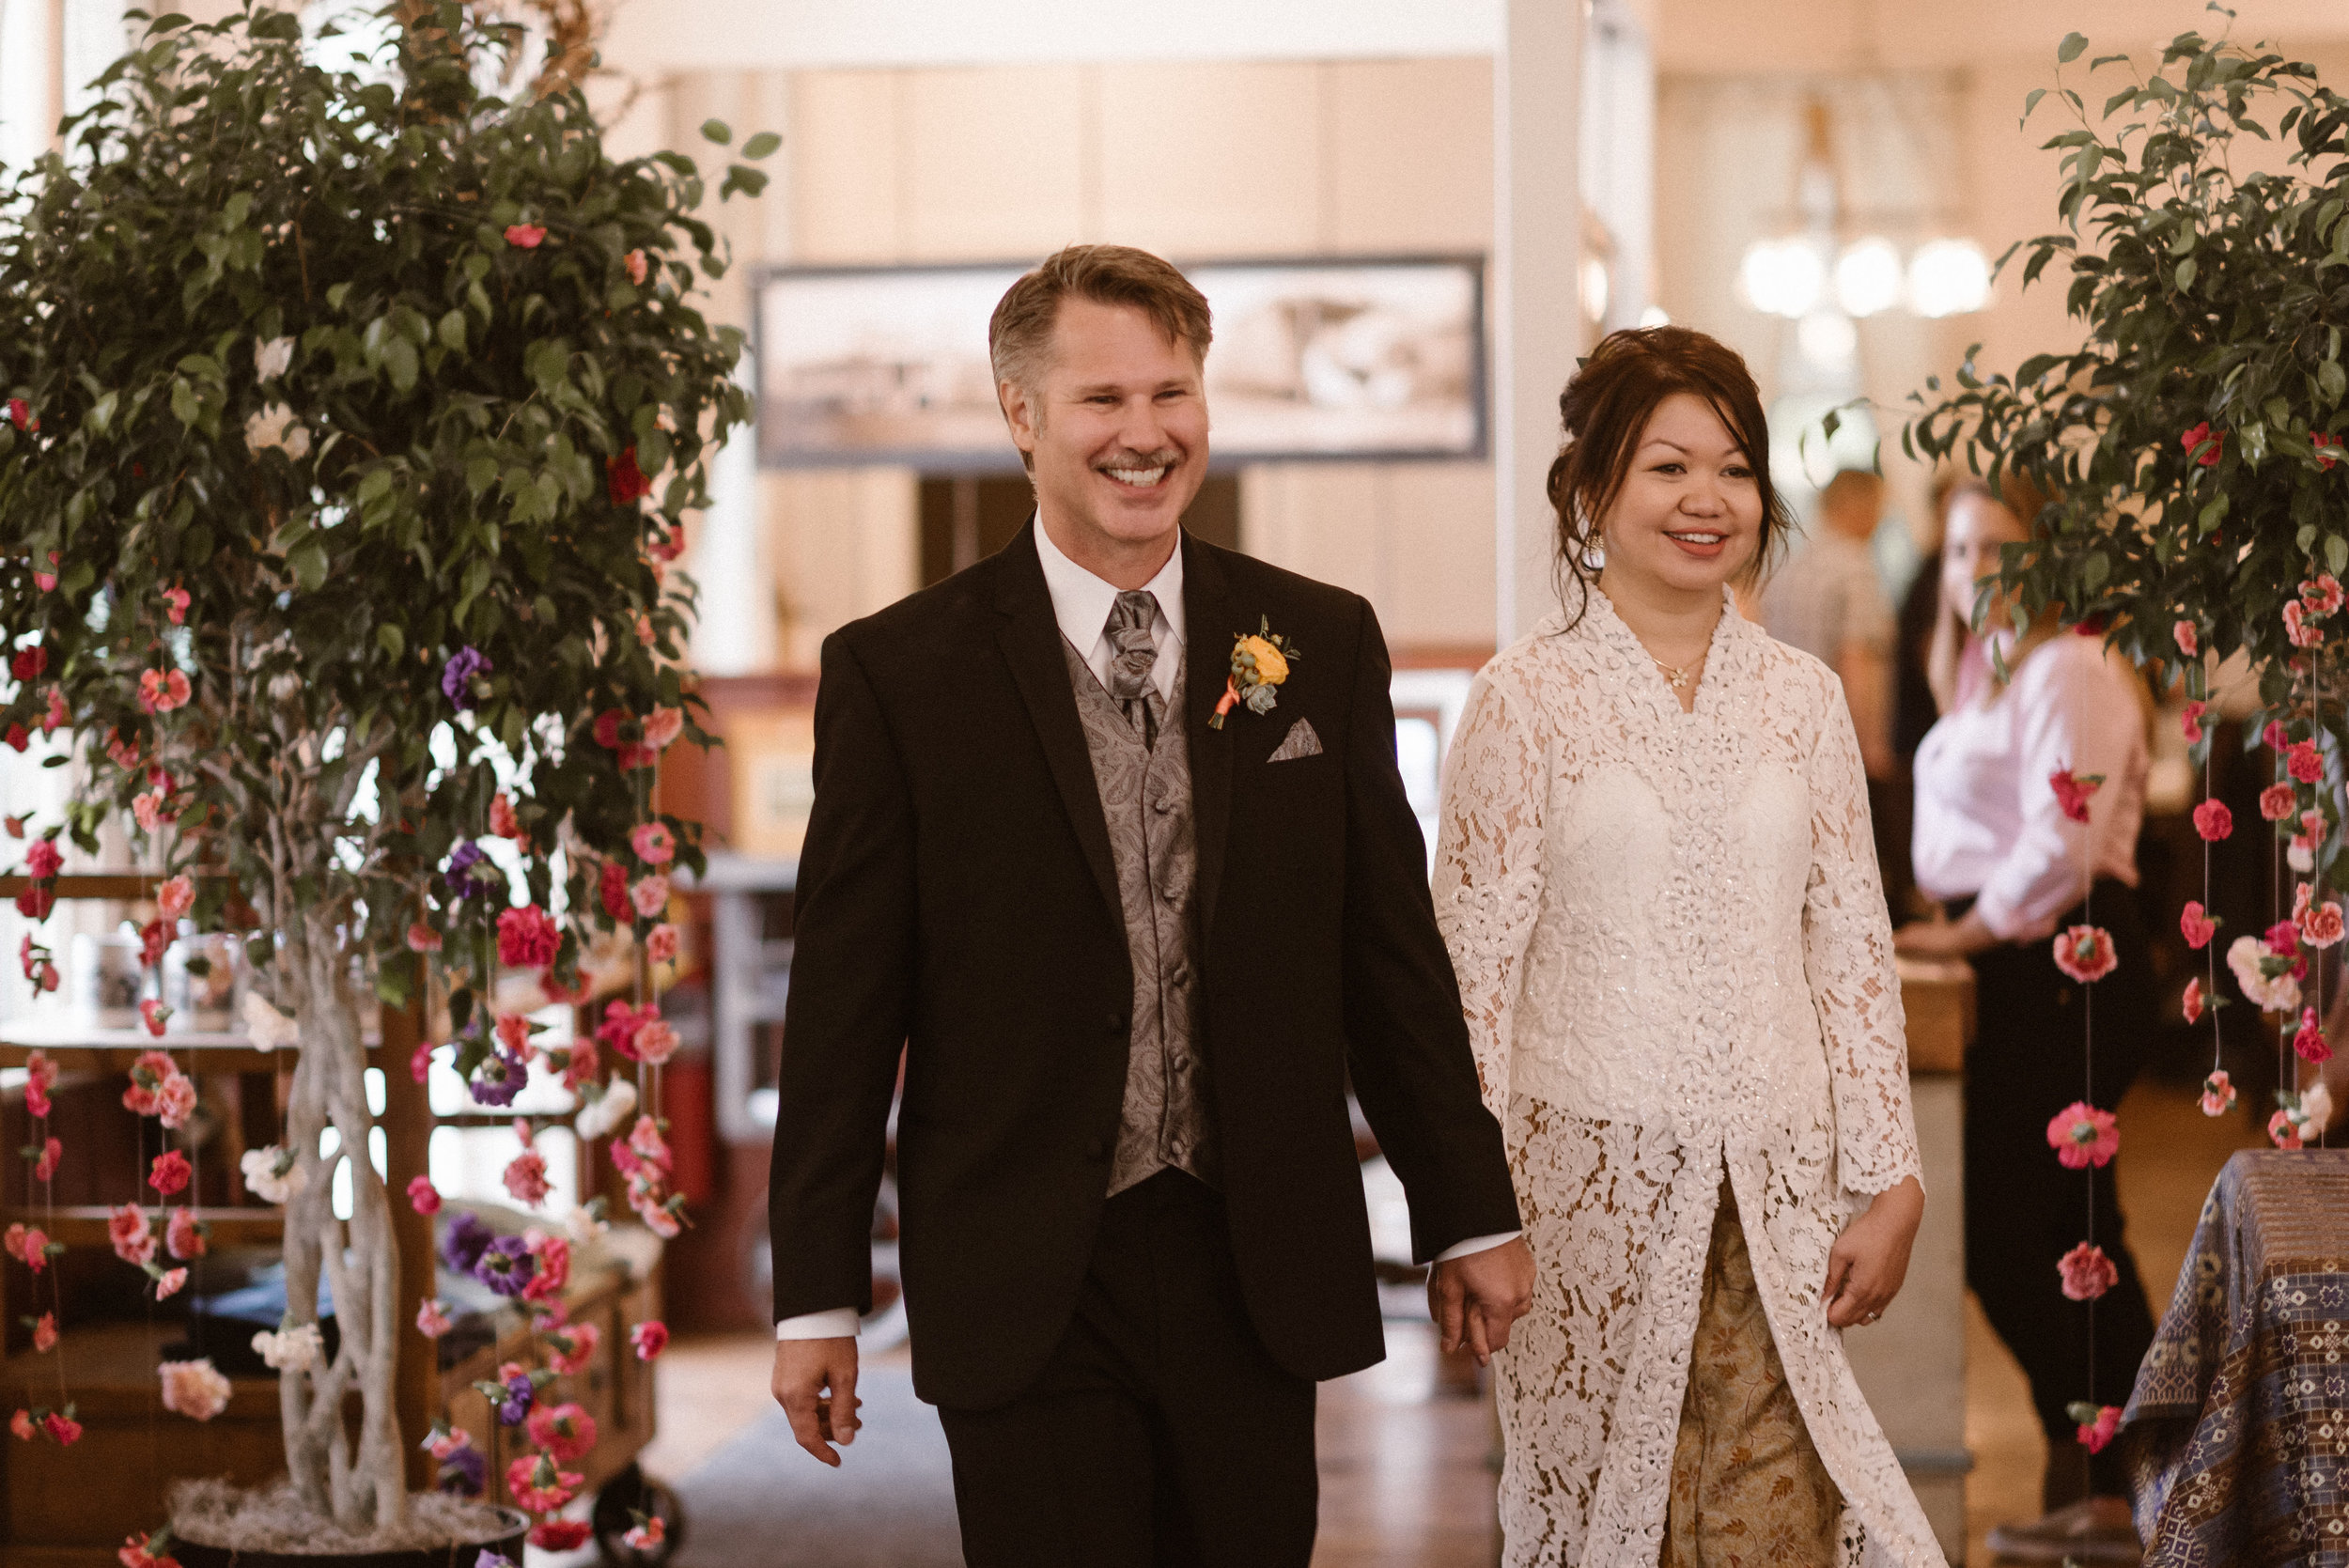 Bride and Groom Entrance at Chautauqua Dining Hall